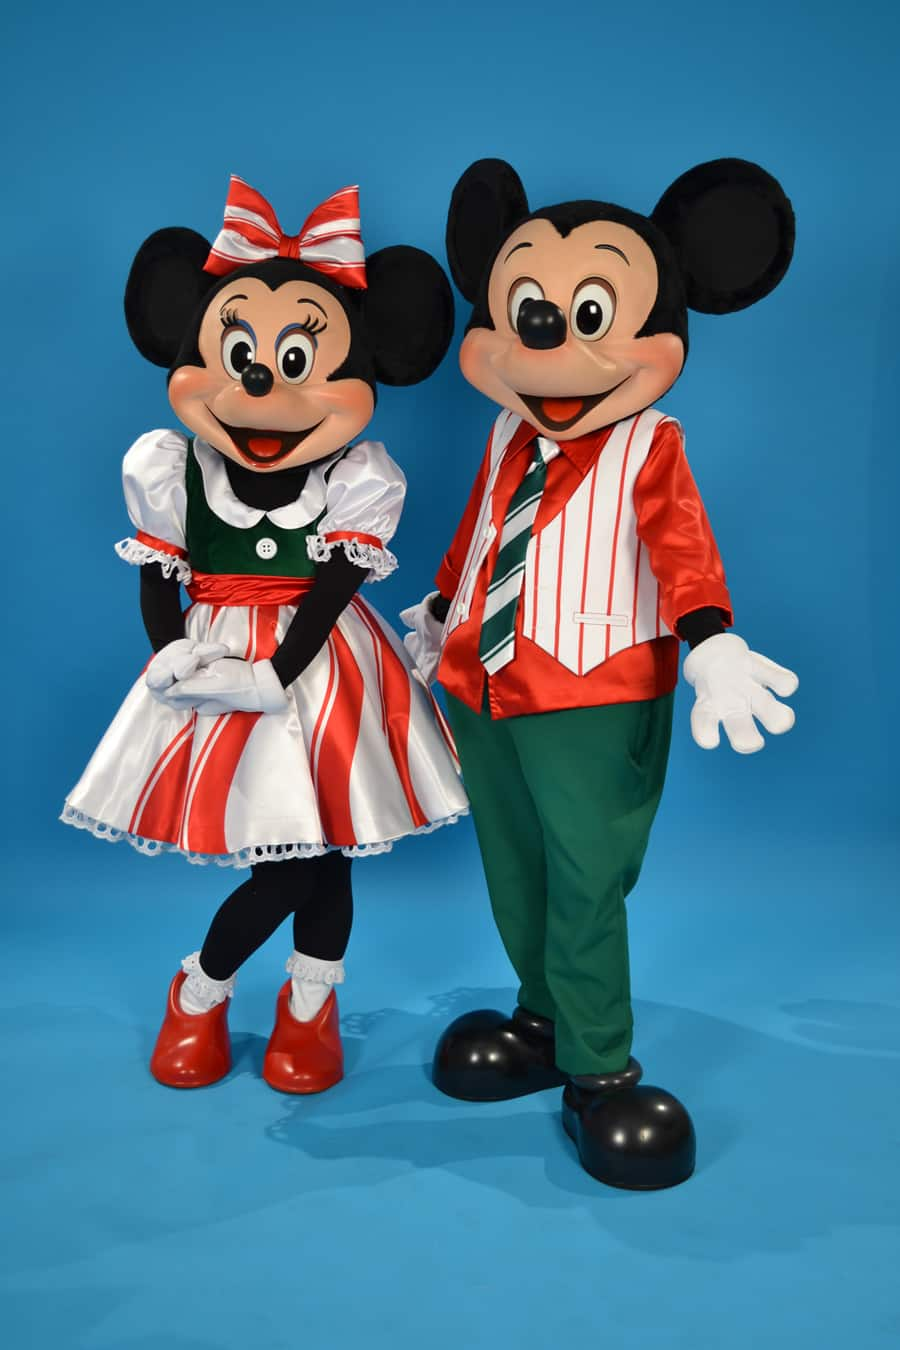 6190688dc5d8e2 Disney Characters Get Dressed Up for Holiday Fun at Disney Parks ...